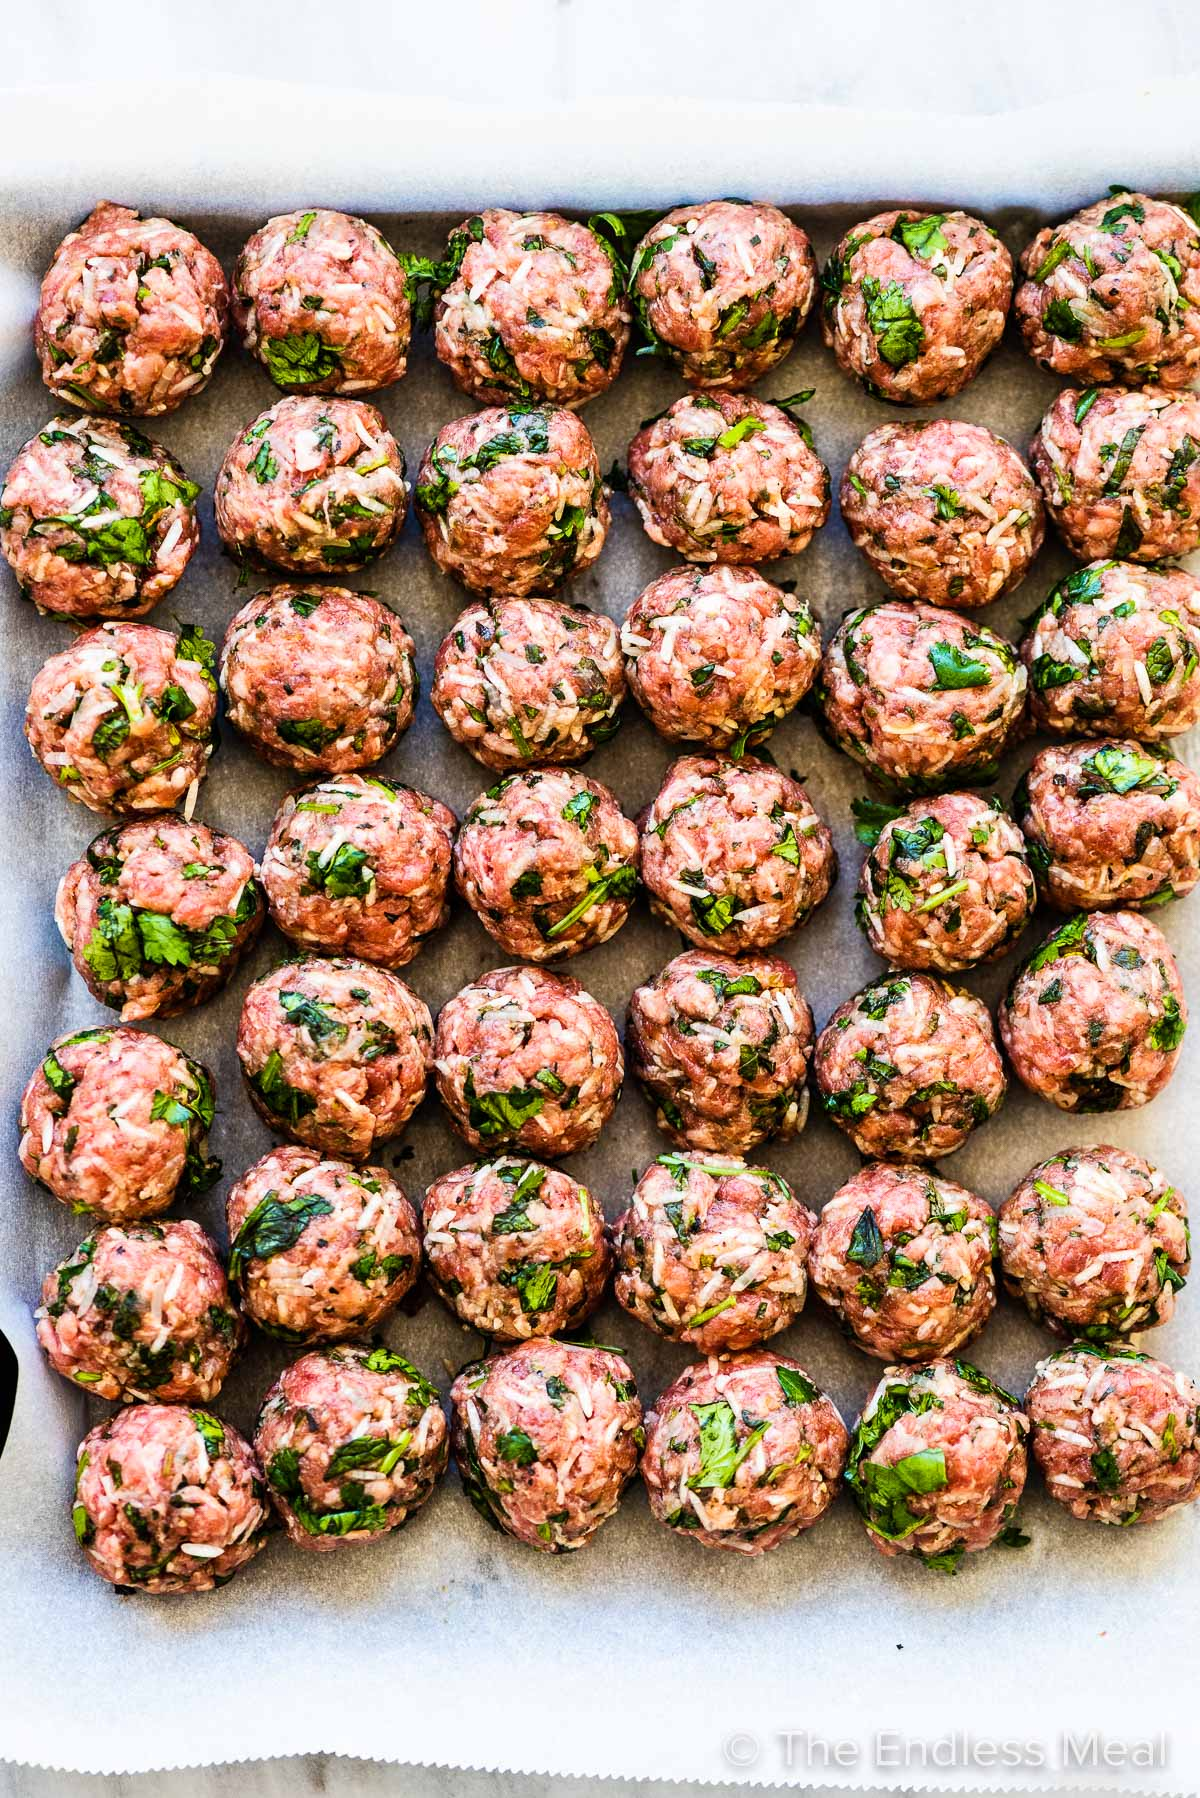 Albondigas (Mexican meatballs) lined up on a baking tray.